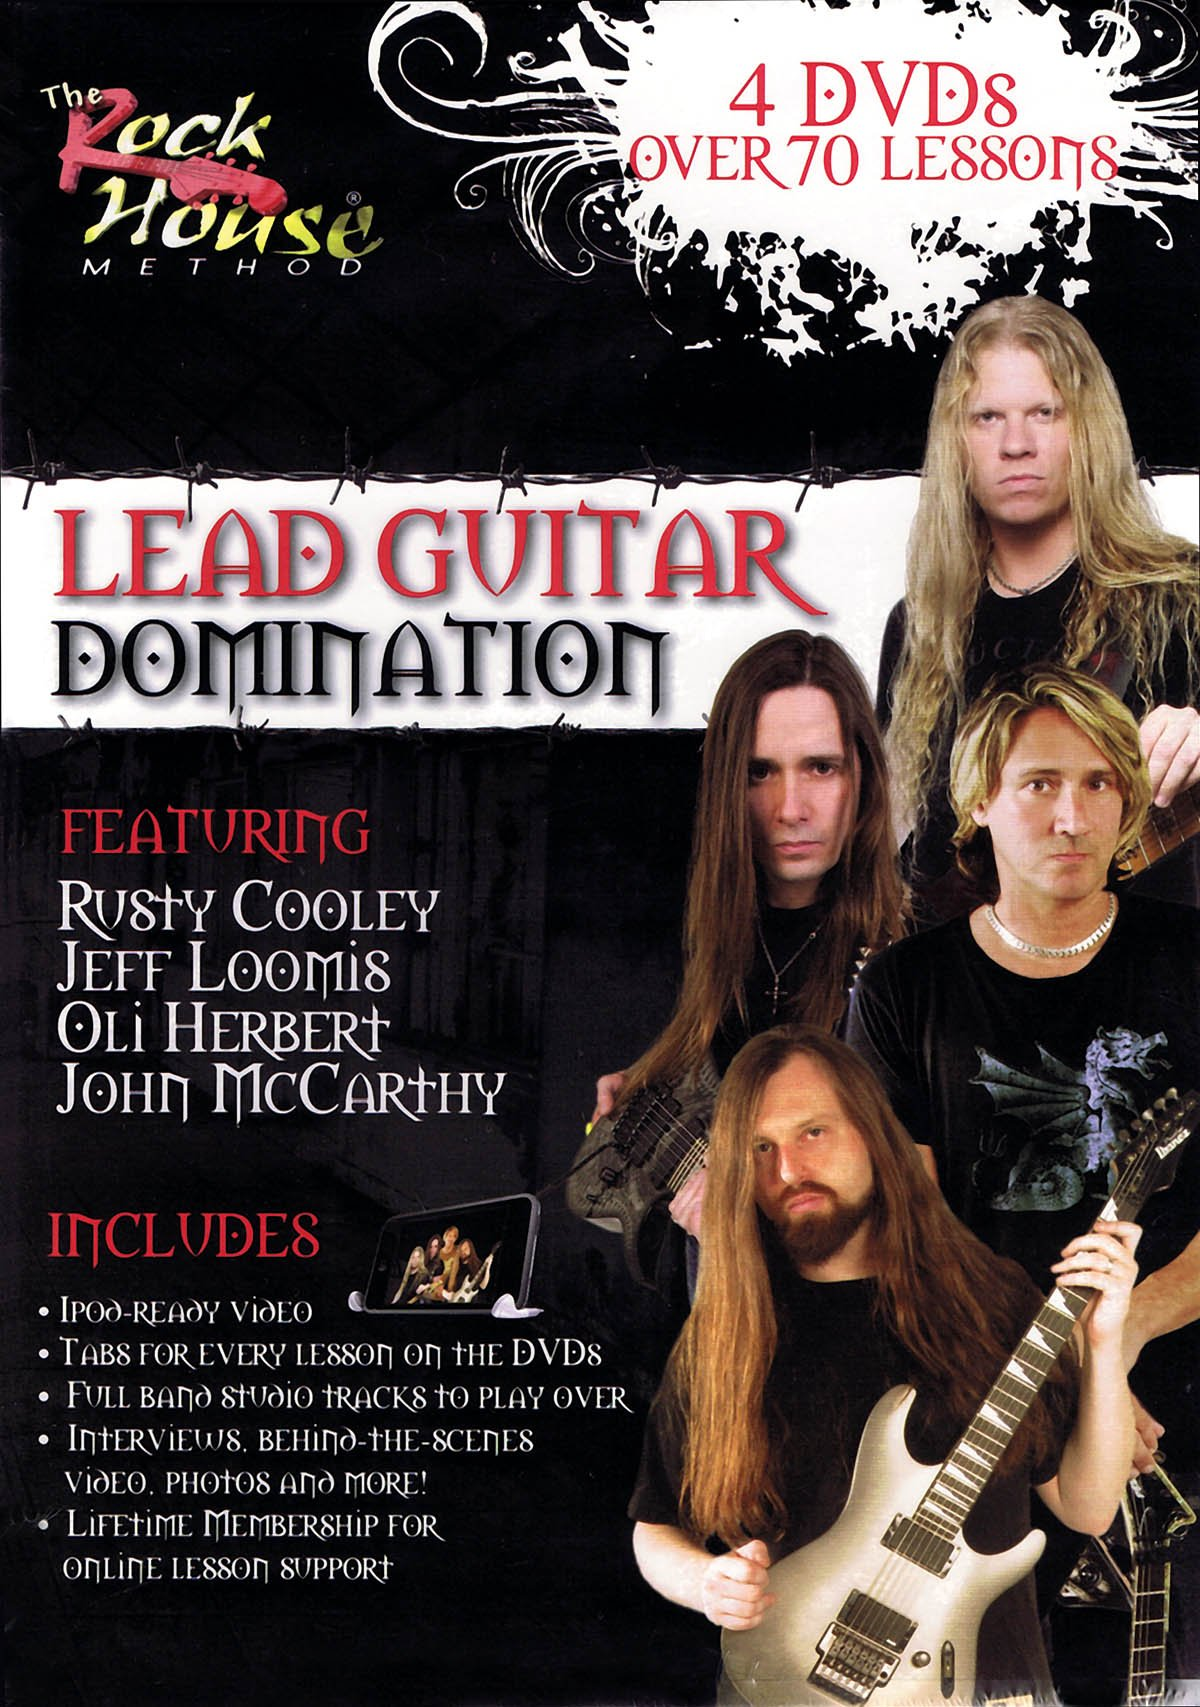 The Rock House Method: Lead Guitar Domination by Rock House